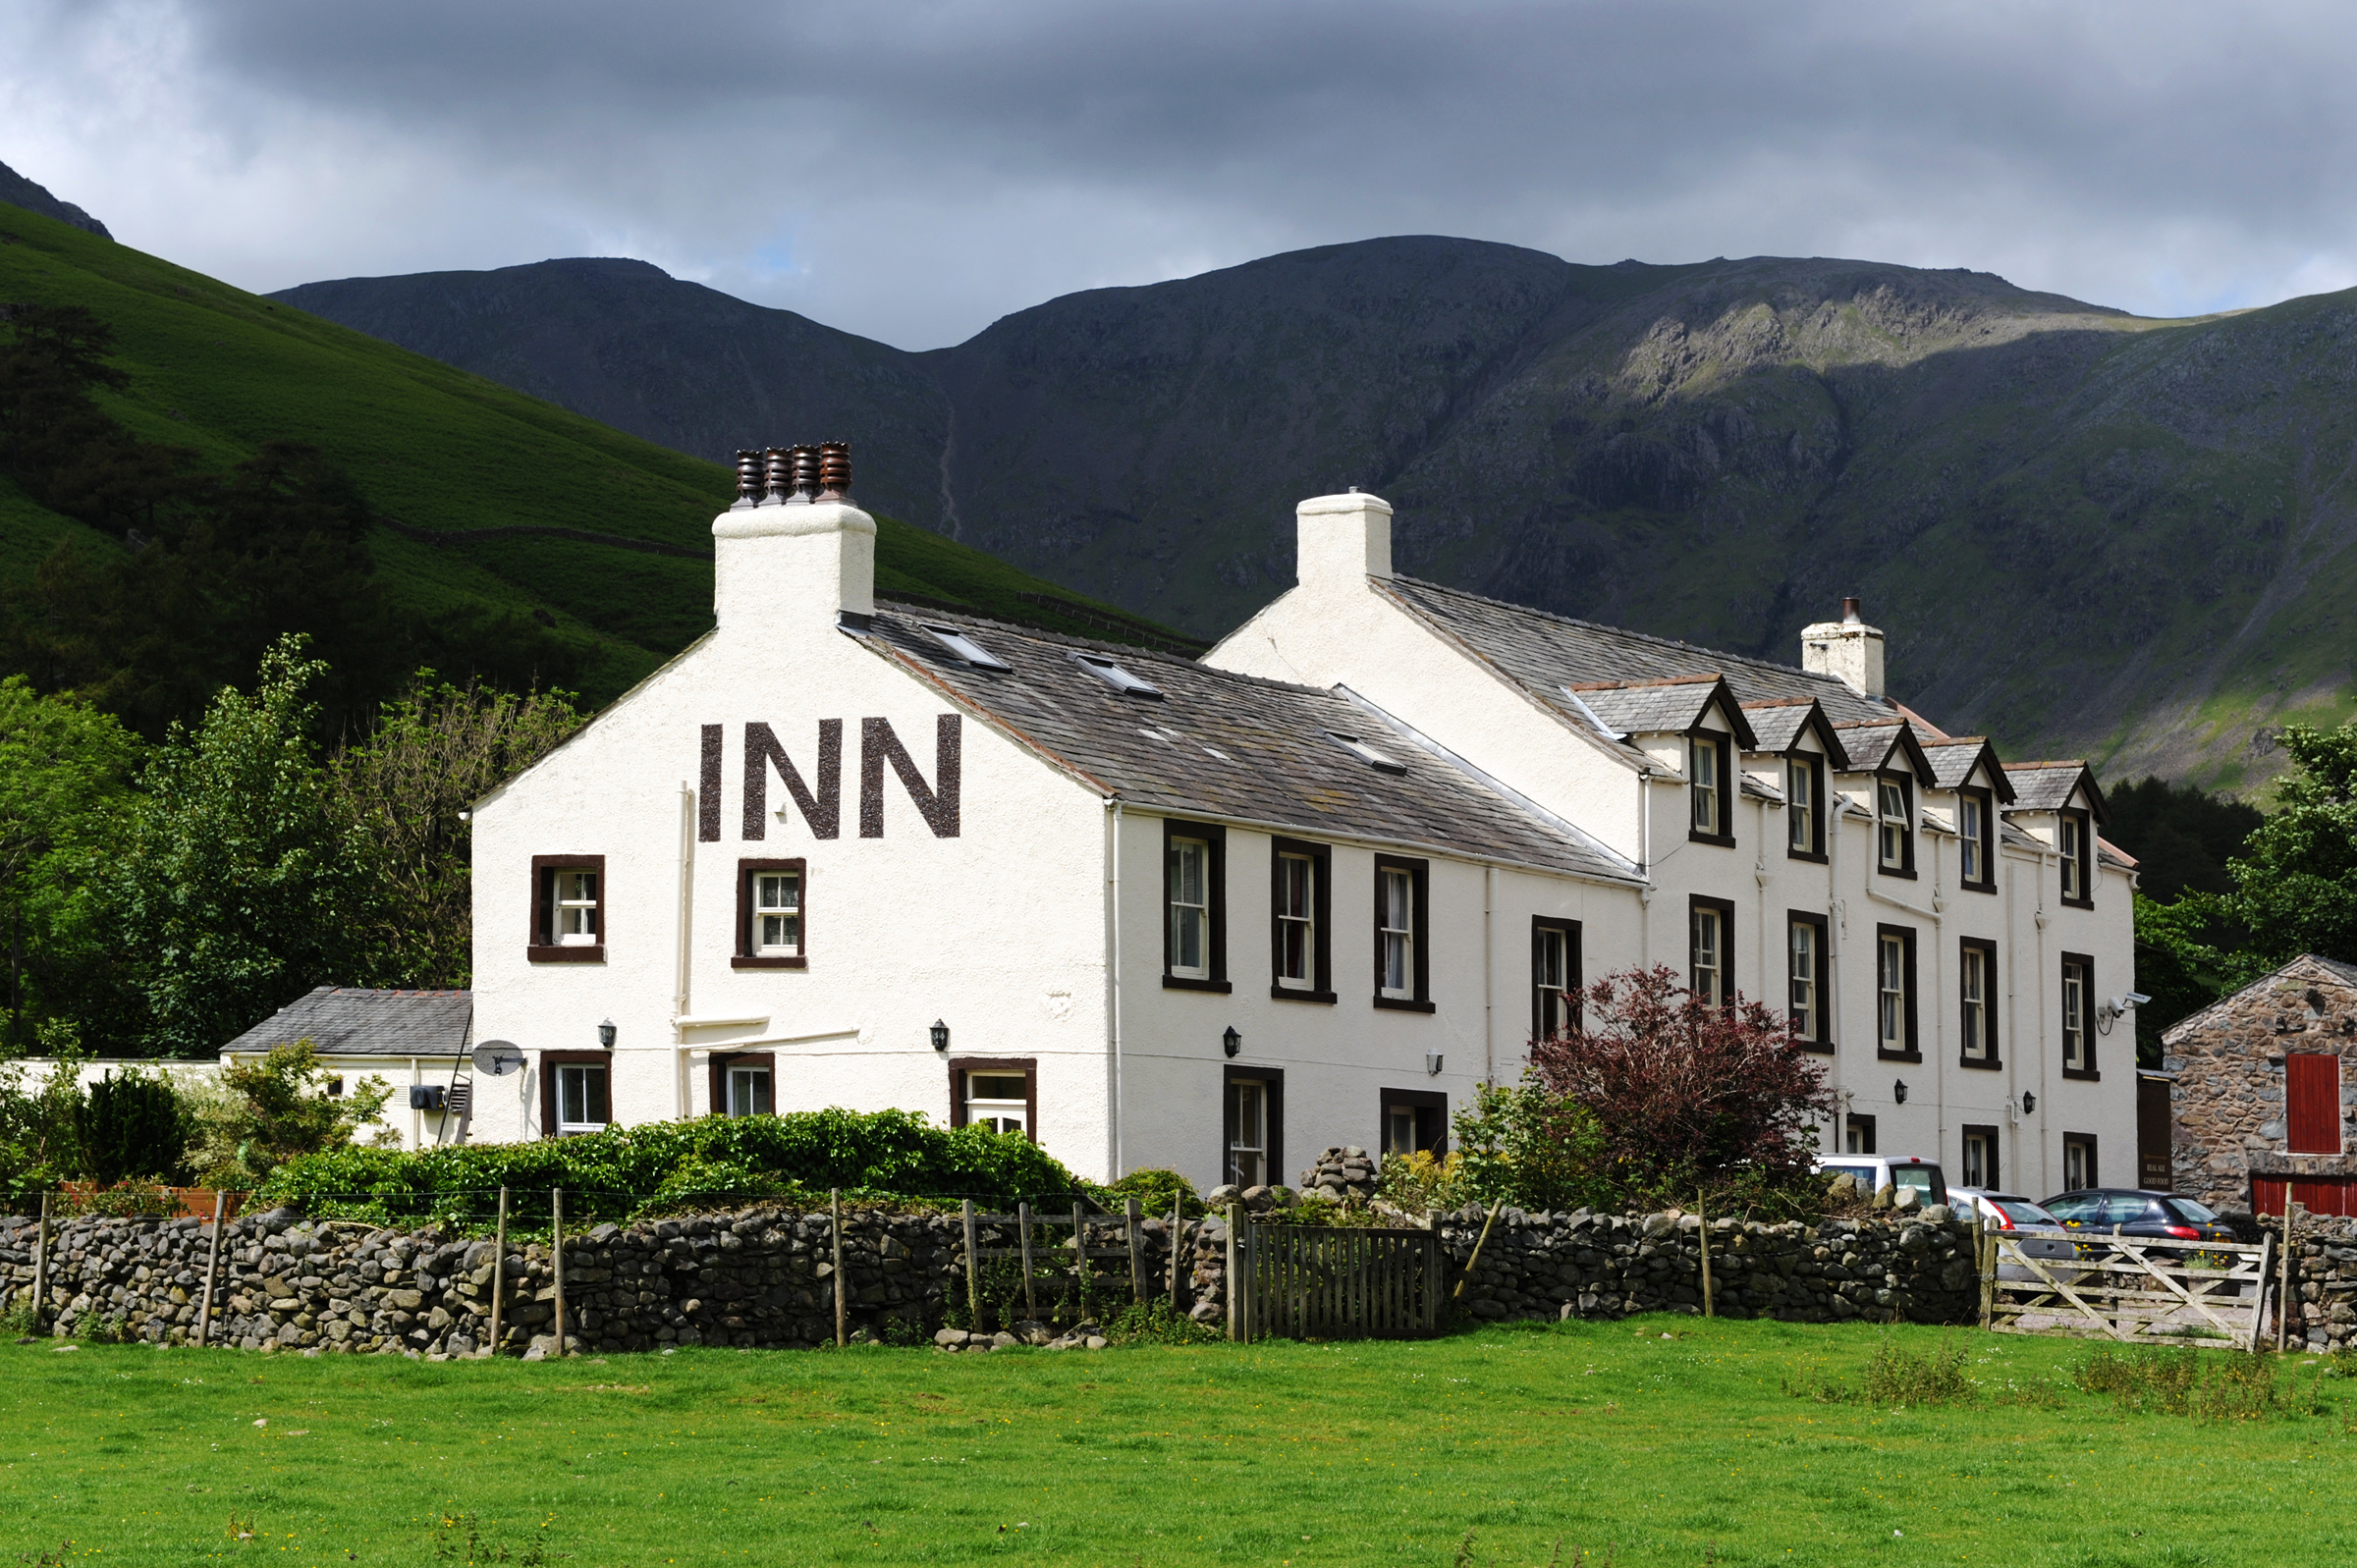 Wasdale Head Inn